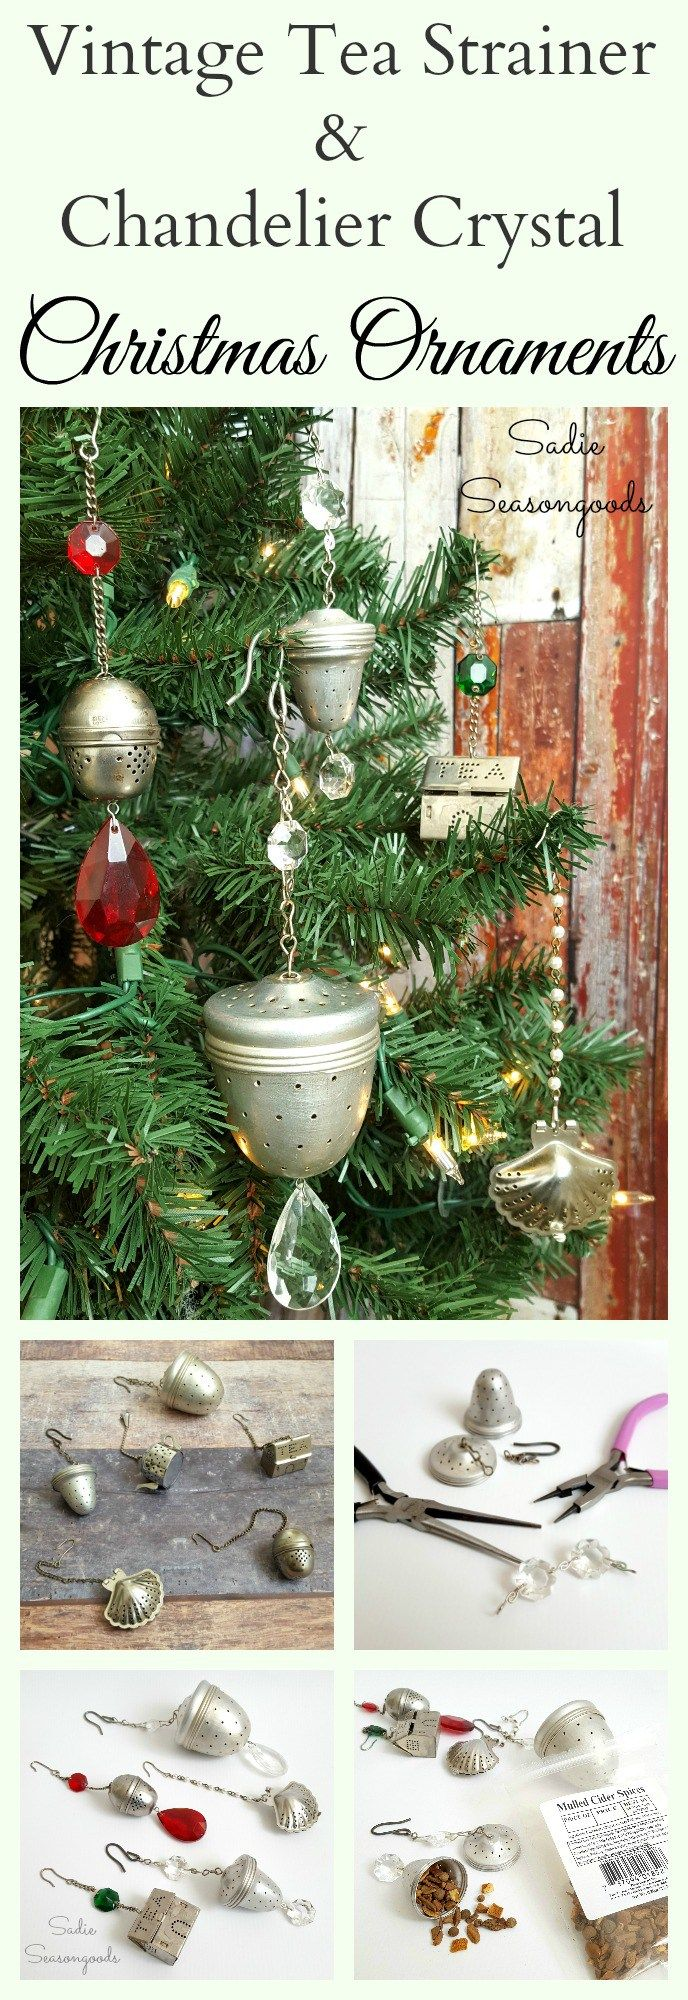 Health benefit of moringa leaves and moringa seeds nutriclue - Combine Rustic Vintage Tea Strainers With Elegant Glamorous Chandelier Crystals Into Gorgeous Christmas Ornaments That Will Look Great On Your Tree